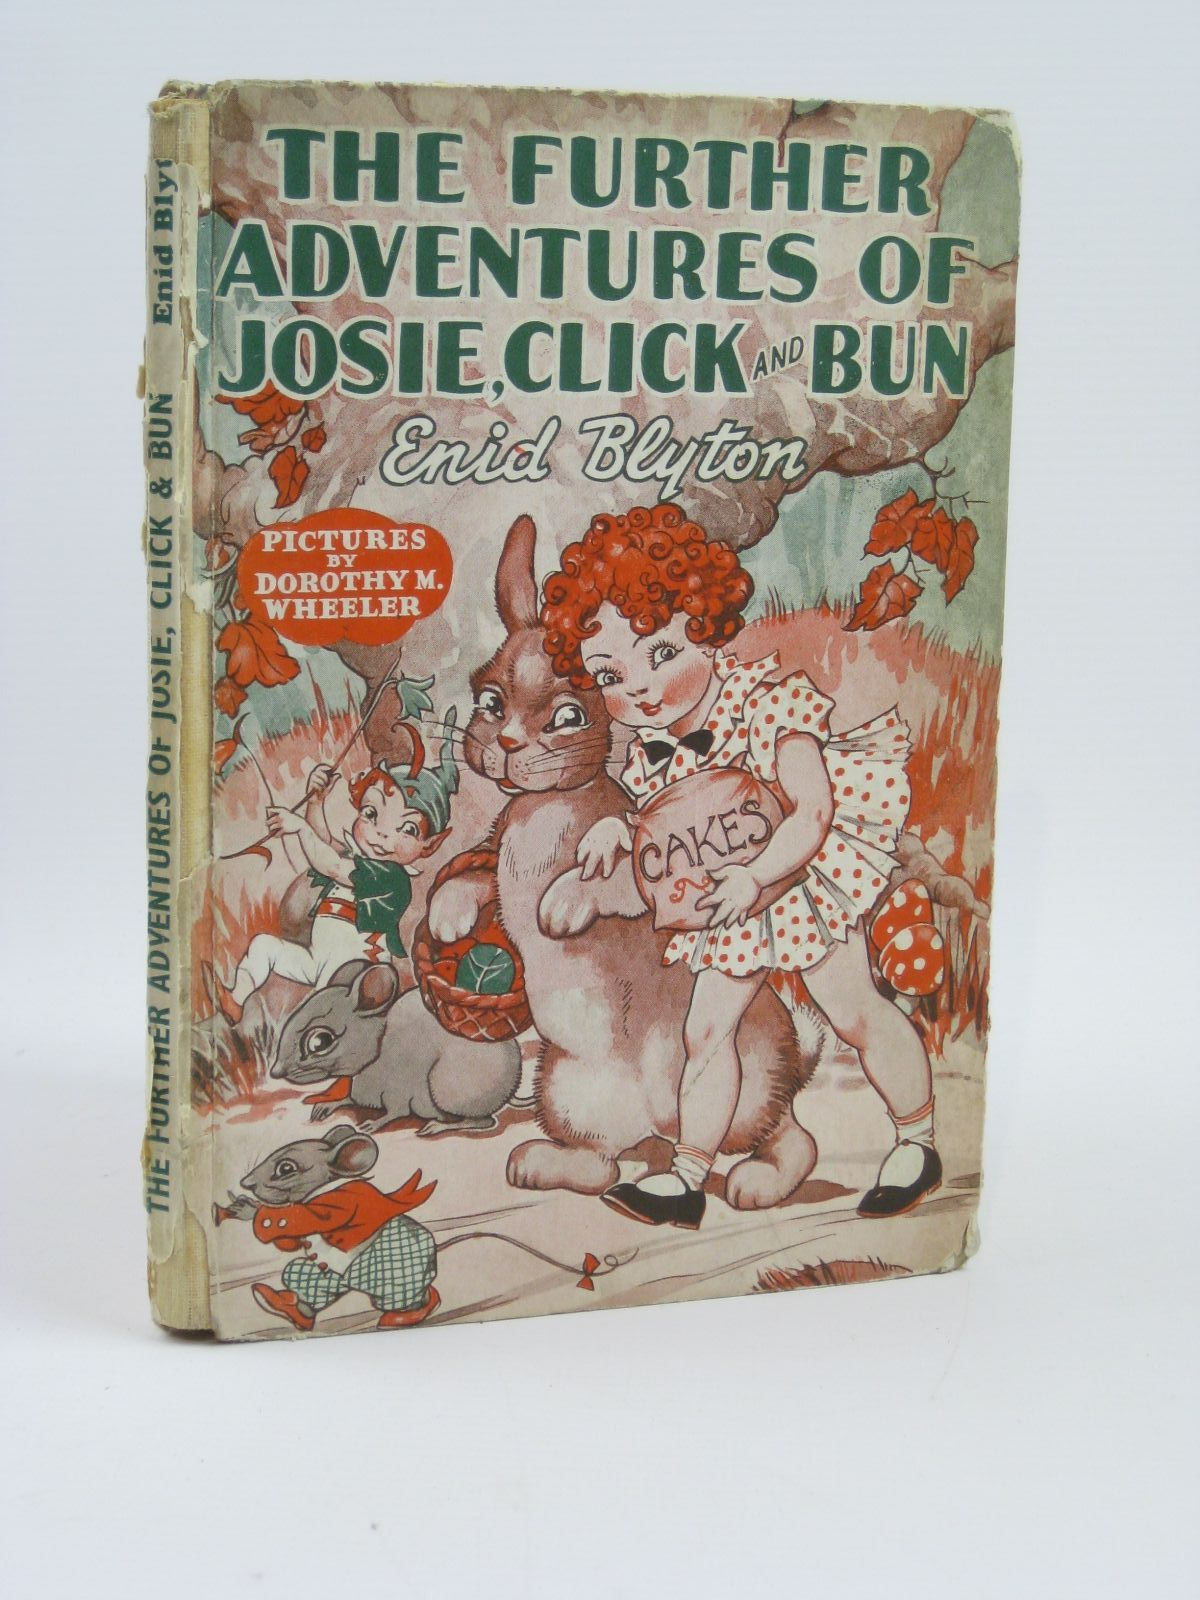 Photo of THE FURTHER ADVENTURES OF JOSIE, CLICK AND BUN written by Blyton, Enid illustrated by Wheeler, Dorothy M. published by George Newnes Limited (STOCK CODE: 1406149)  for sale by Stella & Rose's Books